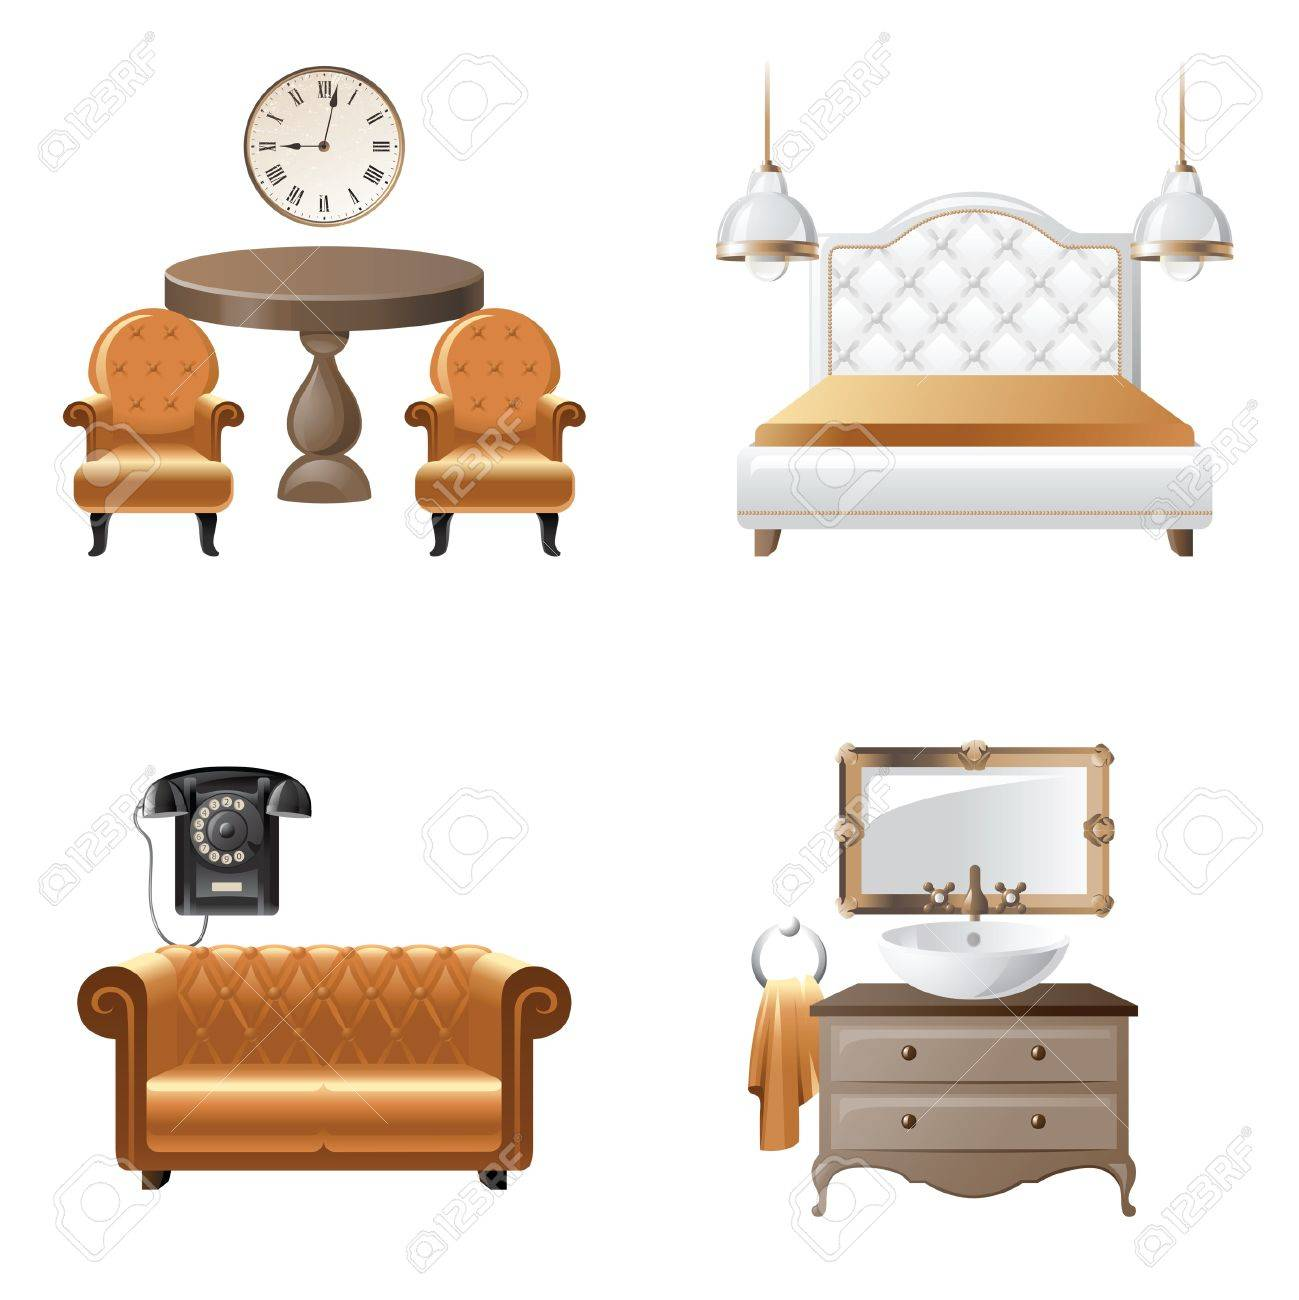 Home Design Elements home interior design elements icons royalty free cliparts, vectors